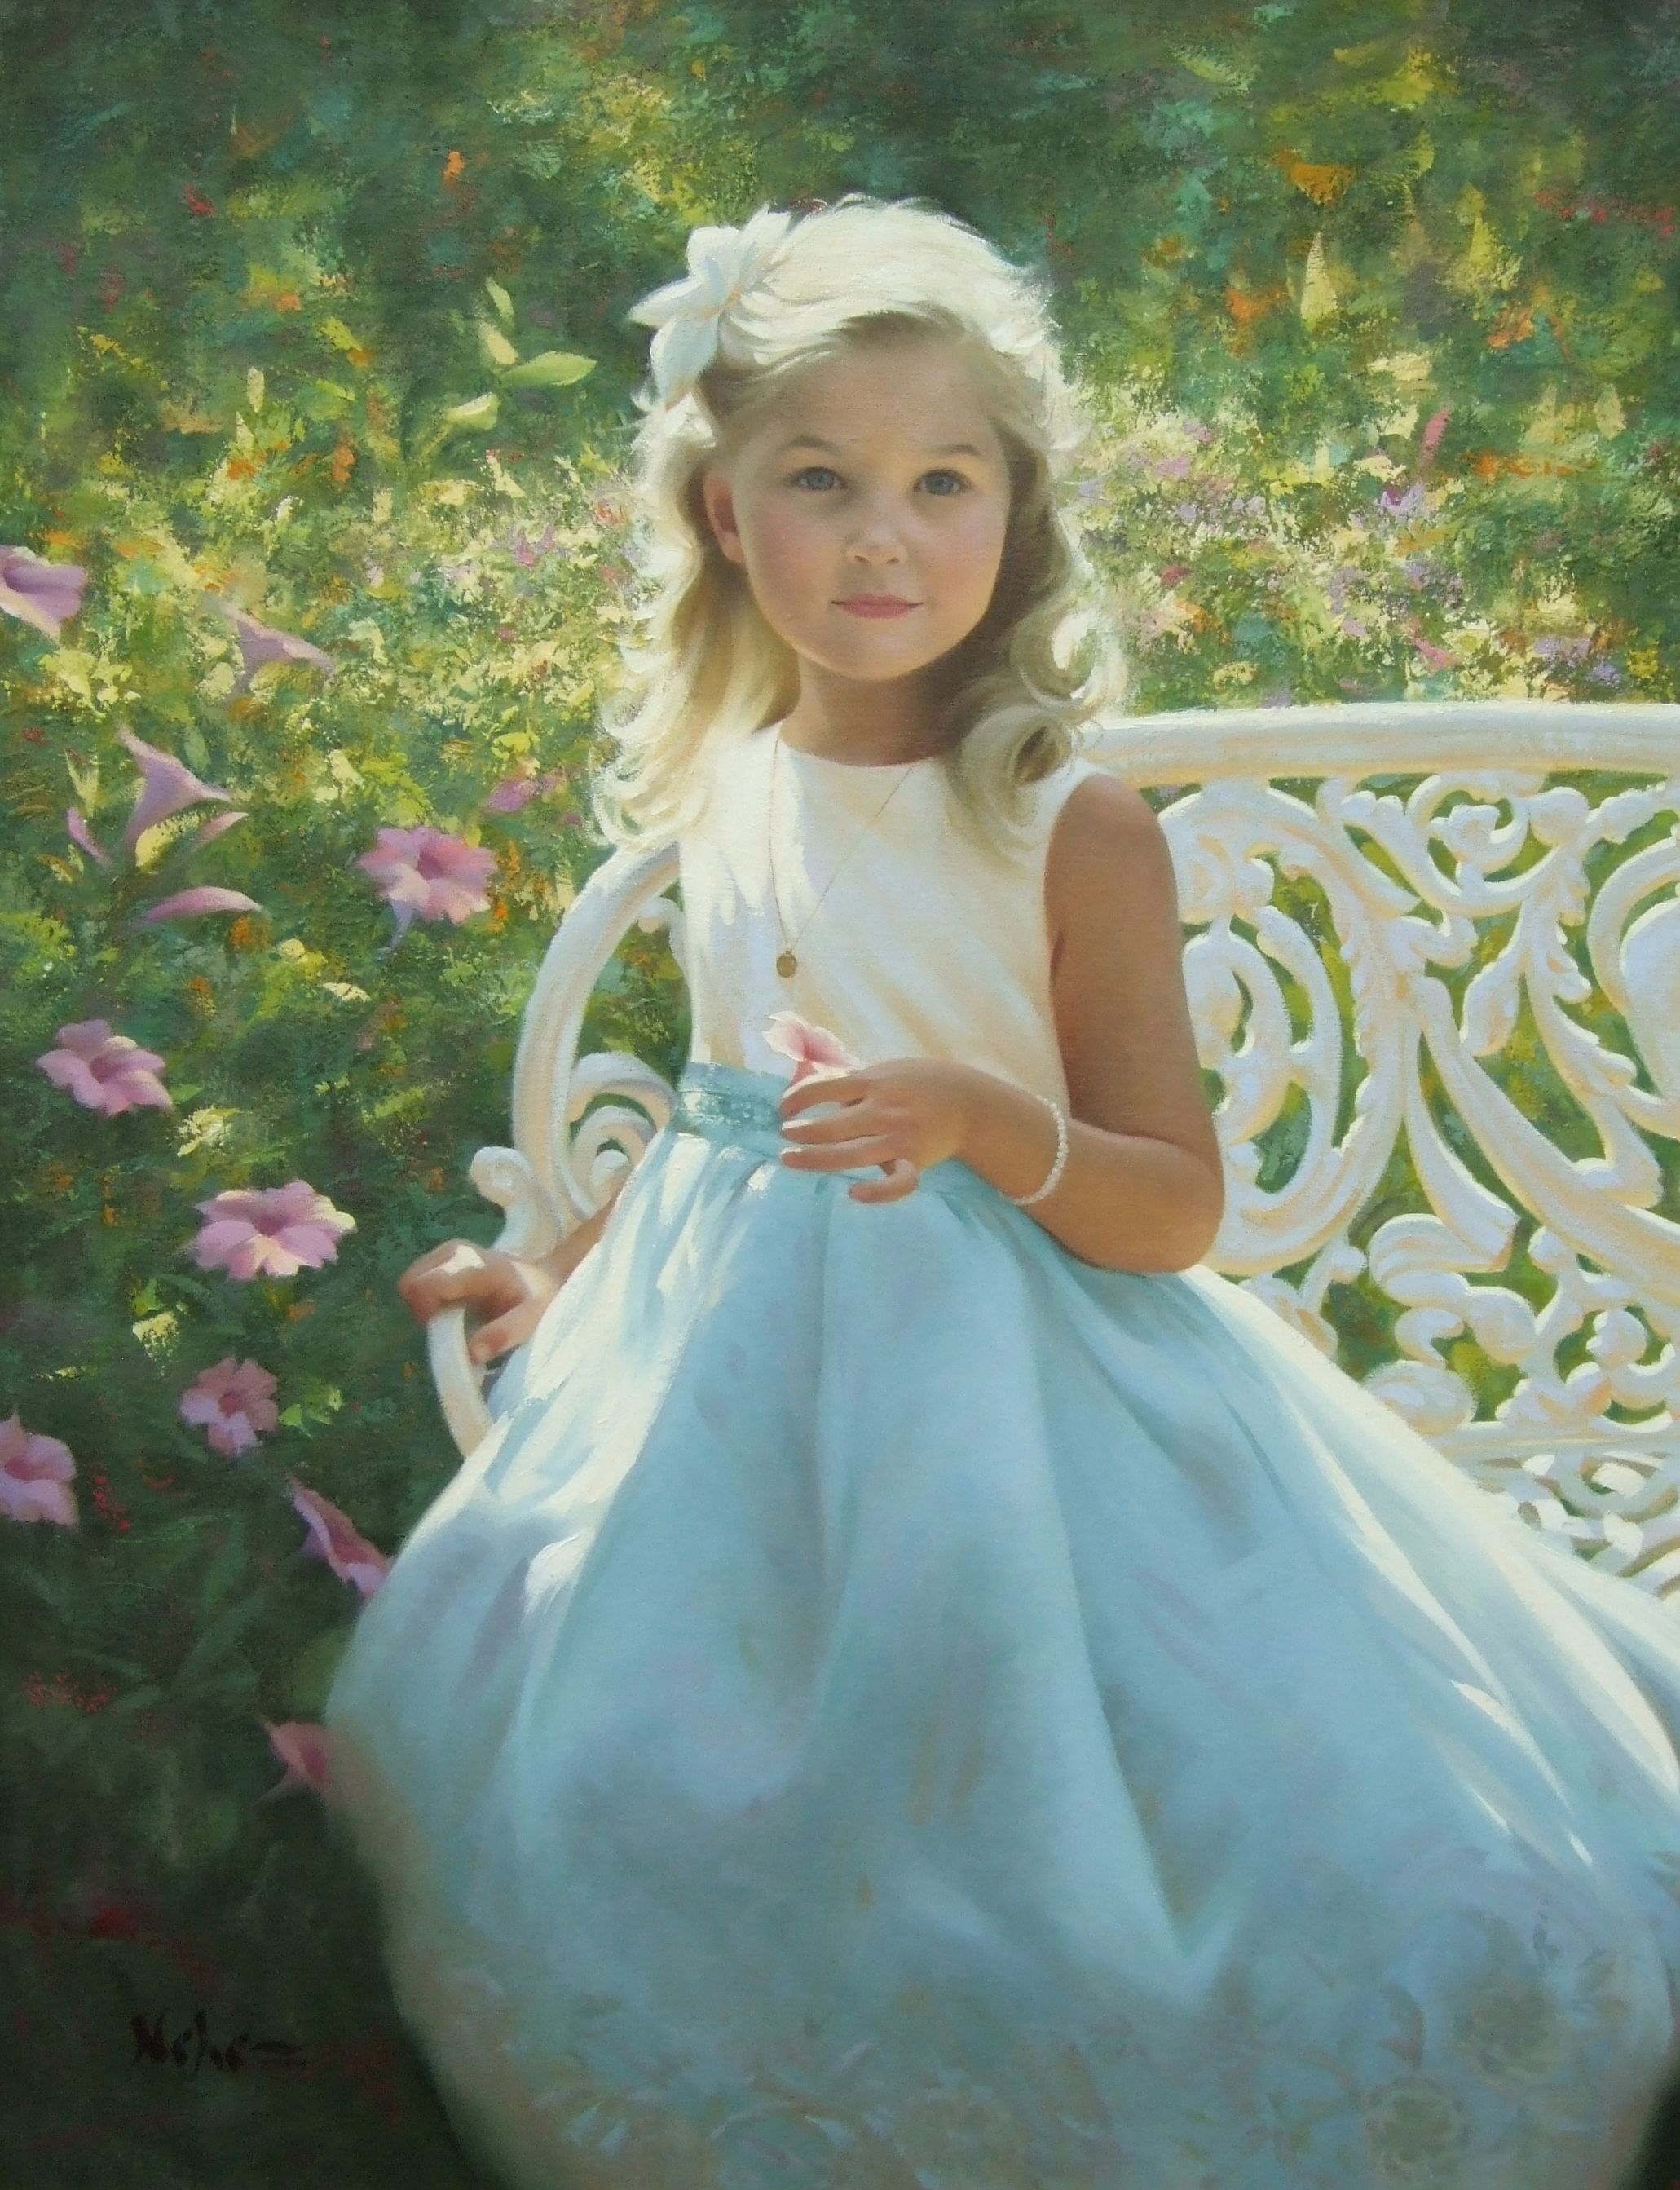 """Painting by Brian Neher, Portrait of Nora, 30"""" x 24"""", Oil on Linen www.BrianNeher.com"""